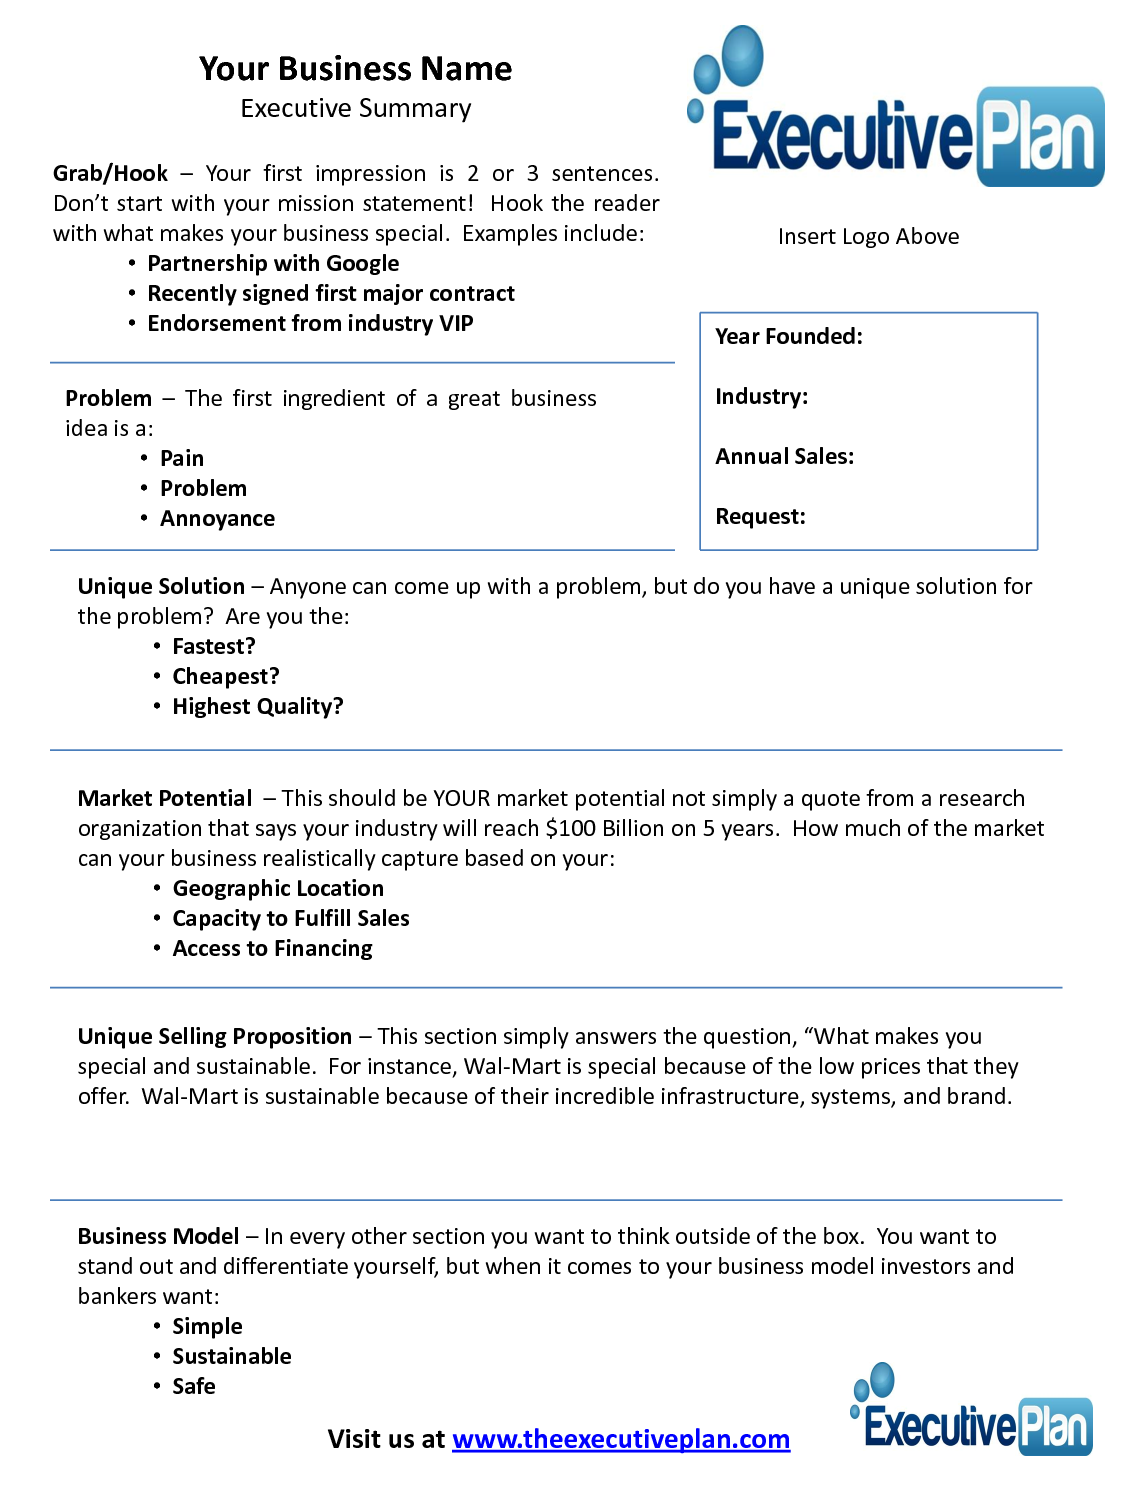 Examples Of An Executive Summary | Executive Summary Template For Bank Loan  How To Write An Effective Executive Summary